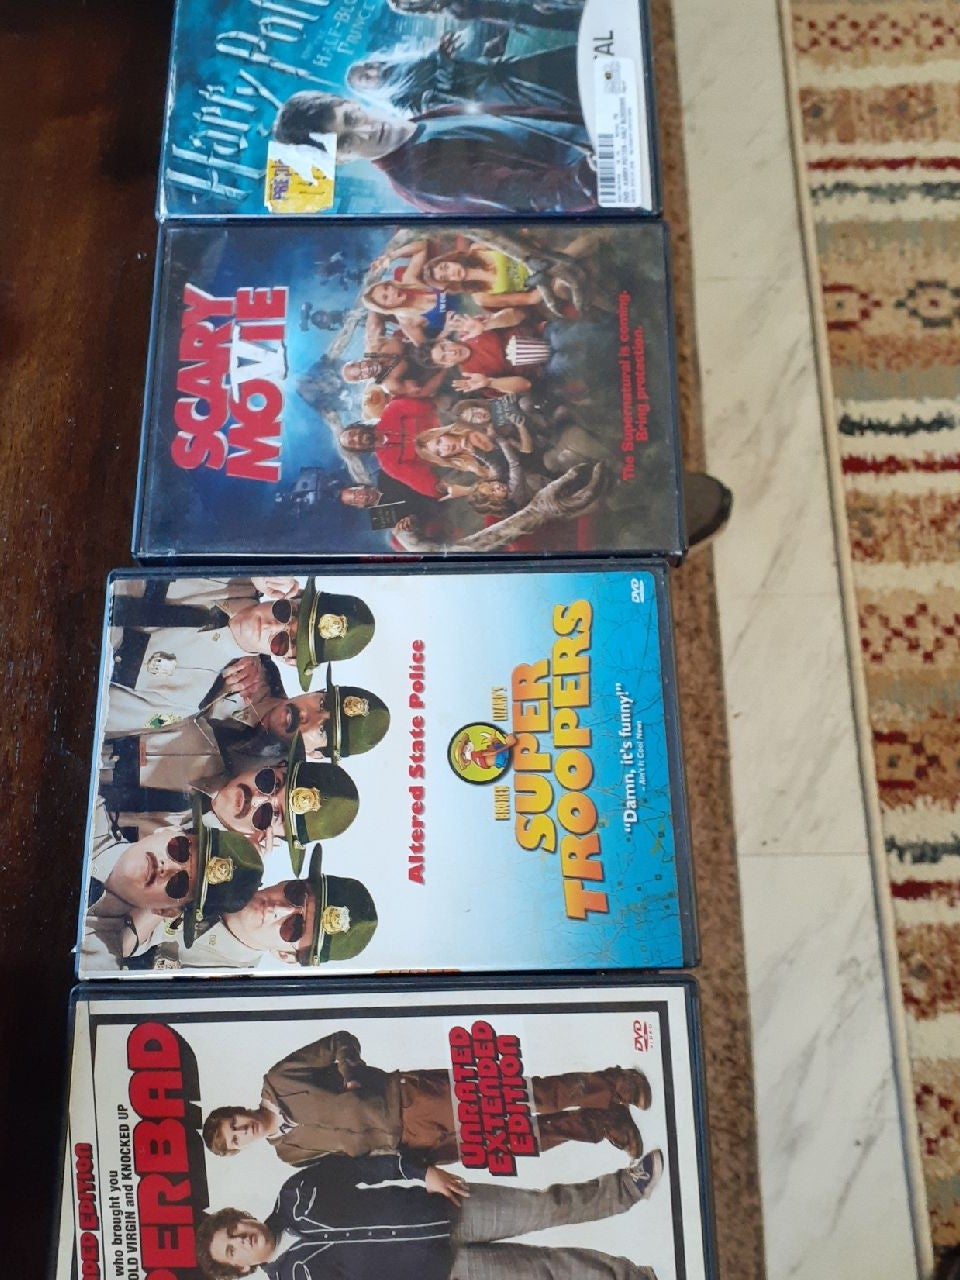 Superbad, Super Troopers and two other m